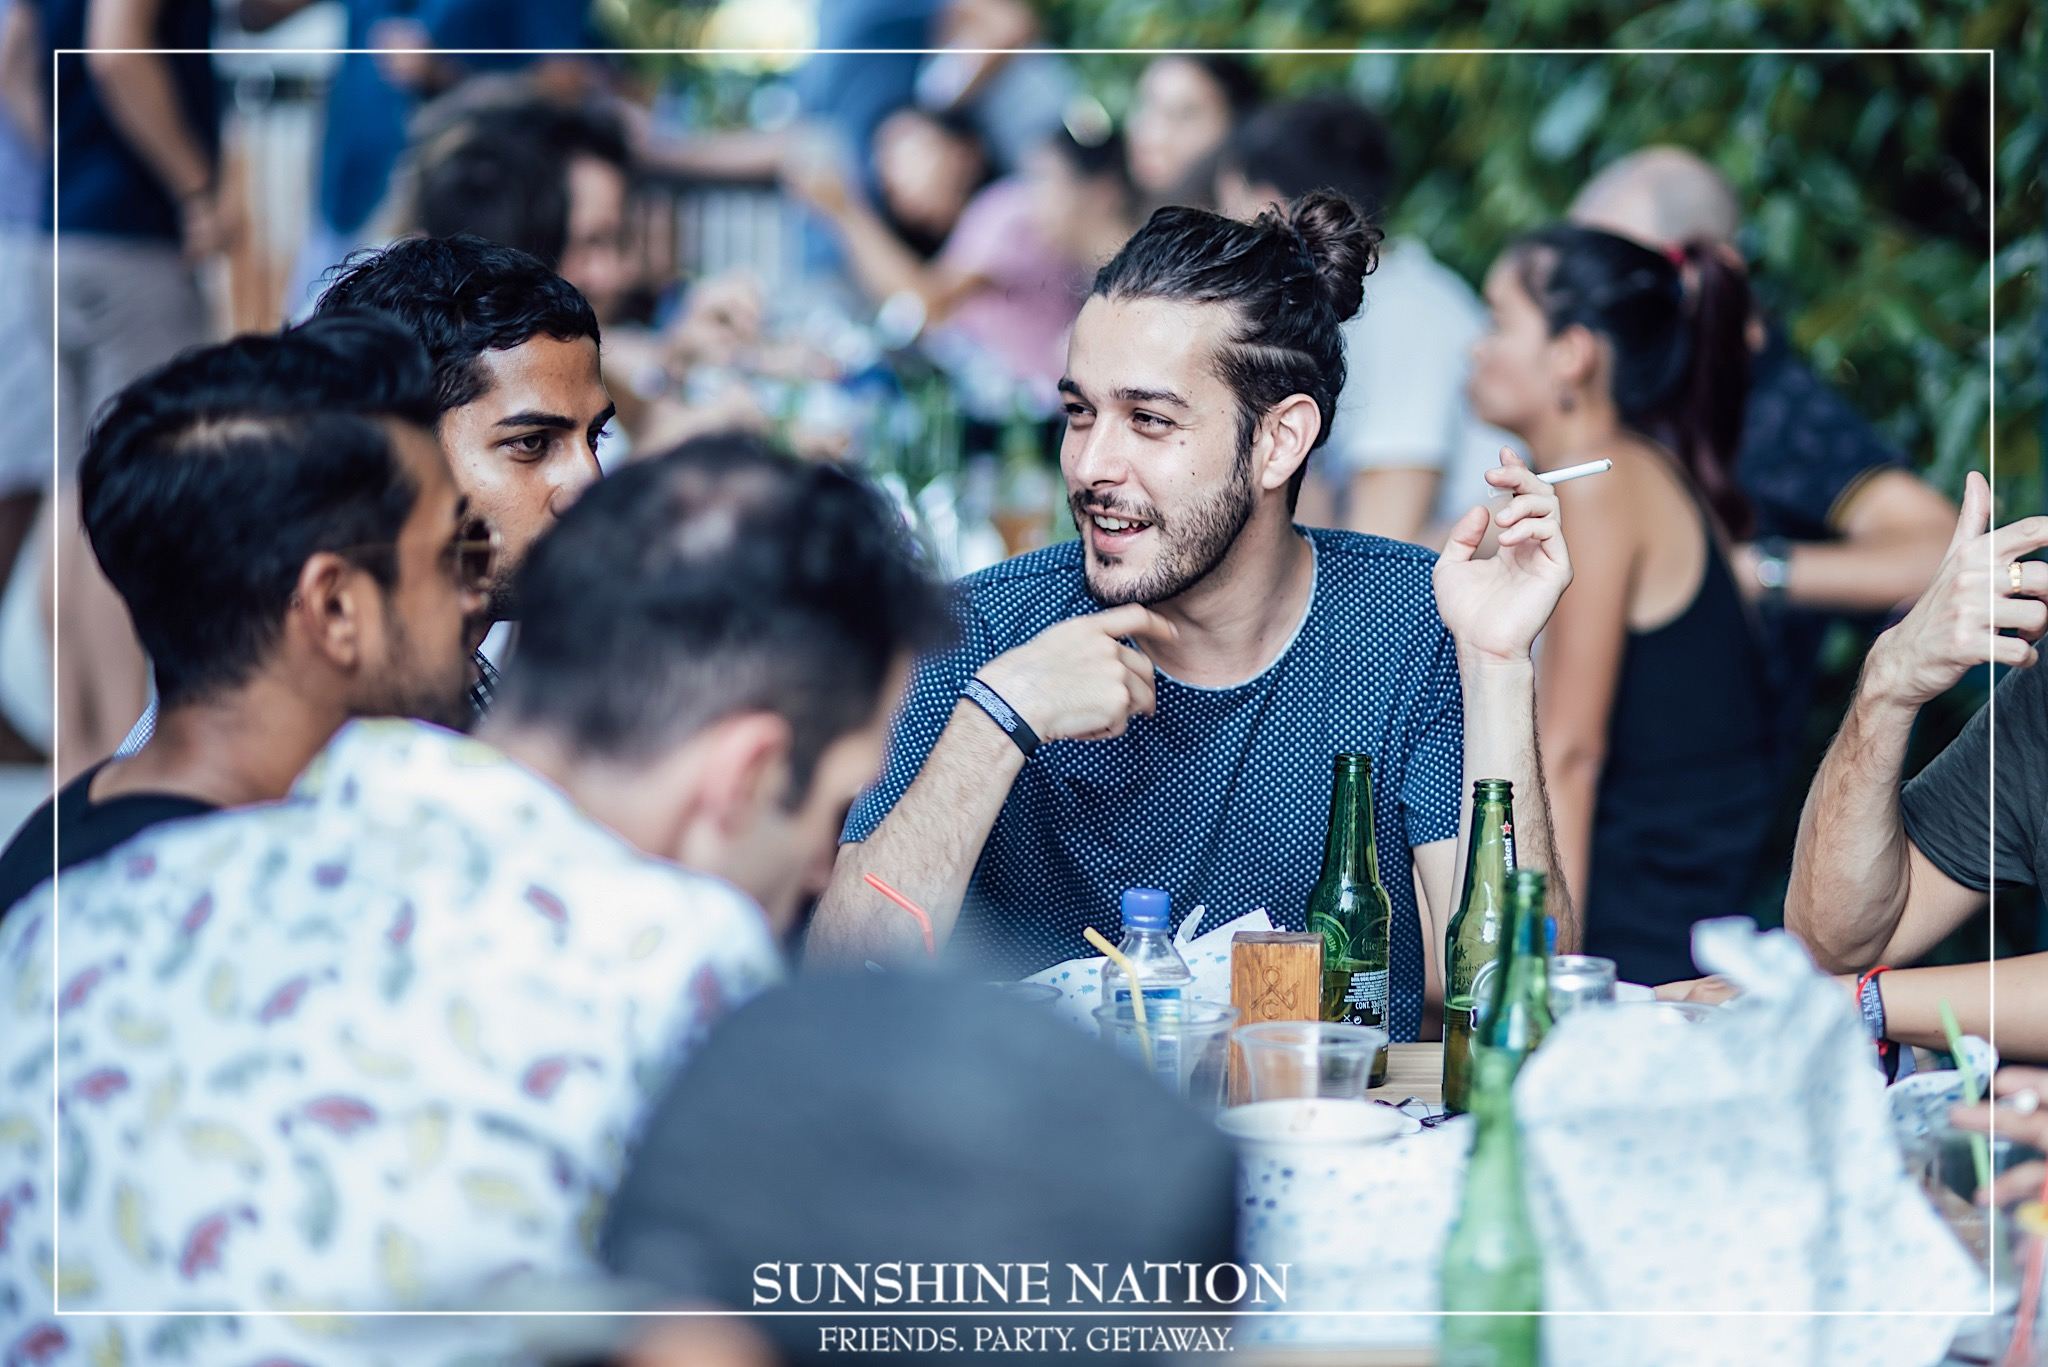 18092016_SunshineNation_Colossal040_Watermarked.jpg